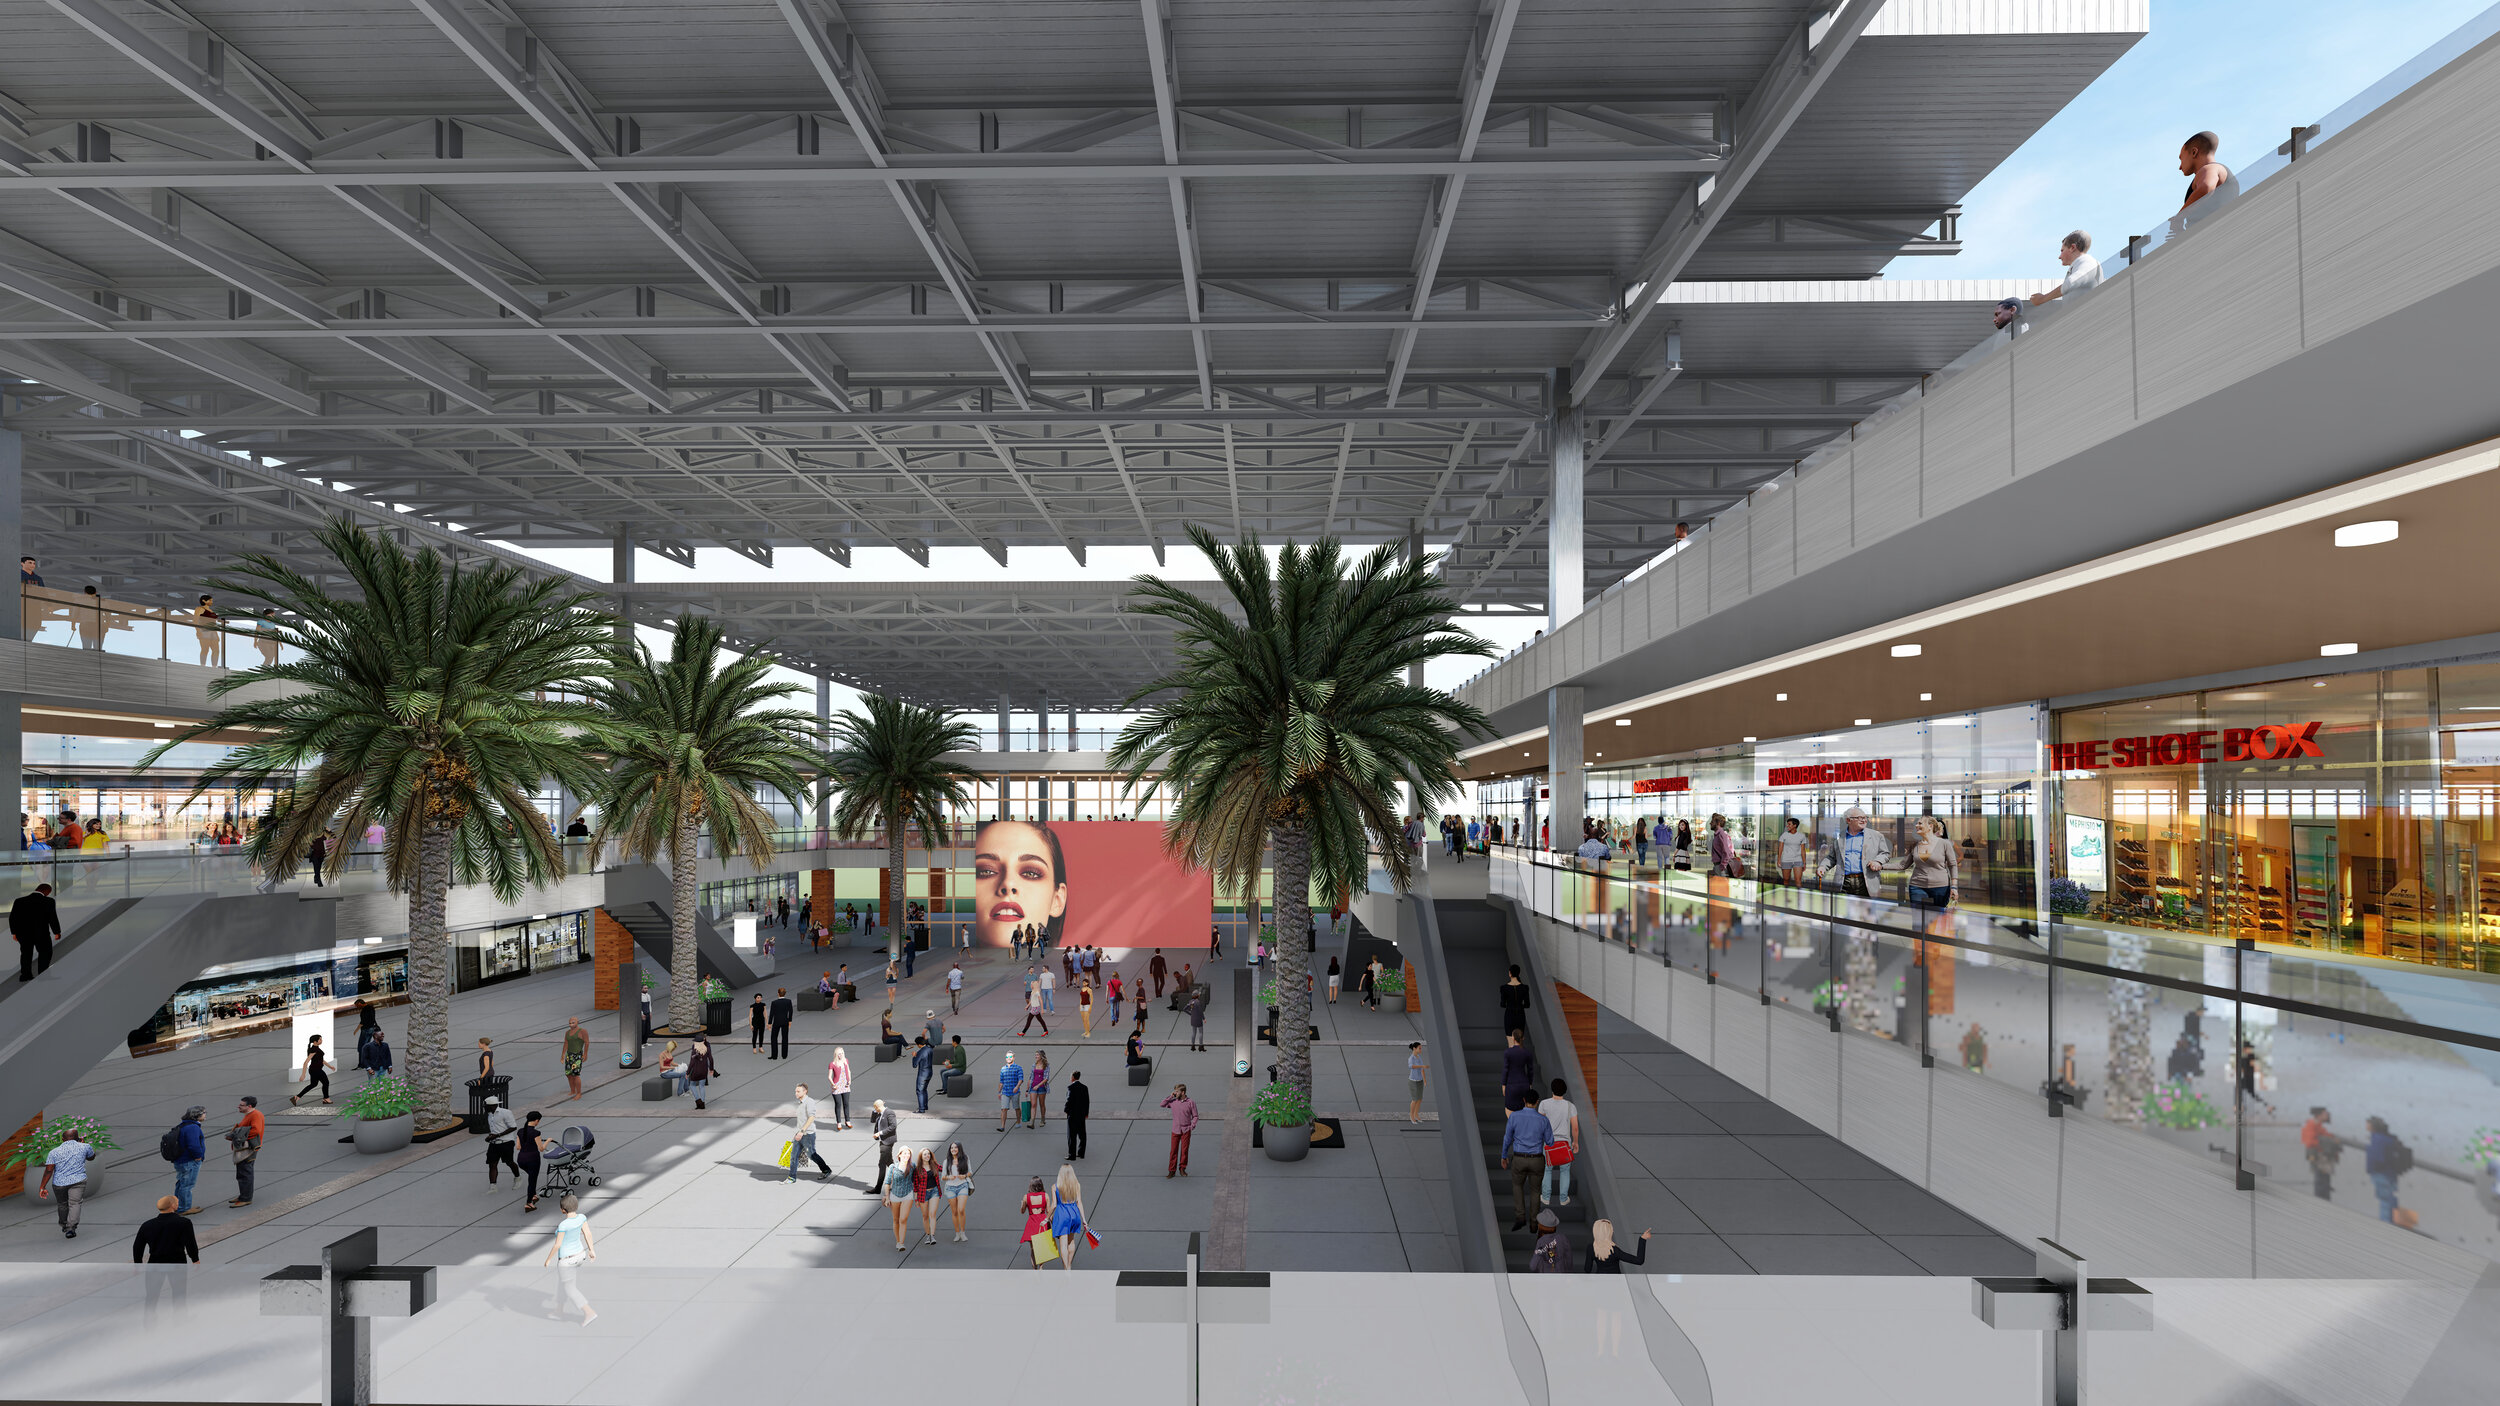 Retail - The development plan for retail features approximately 300,000 square feet for both indoor and outdoor shops.